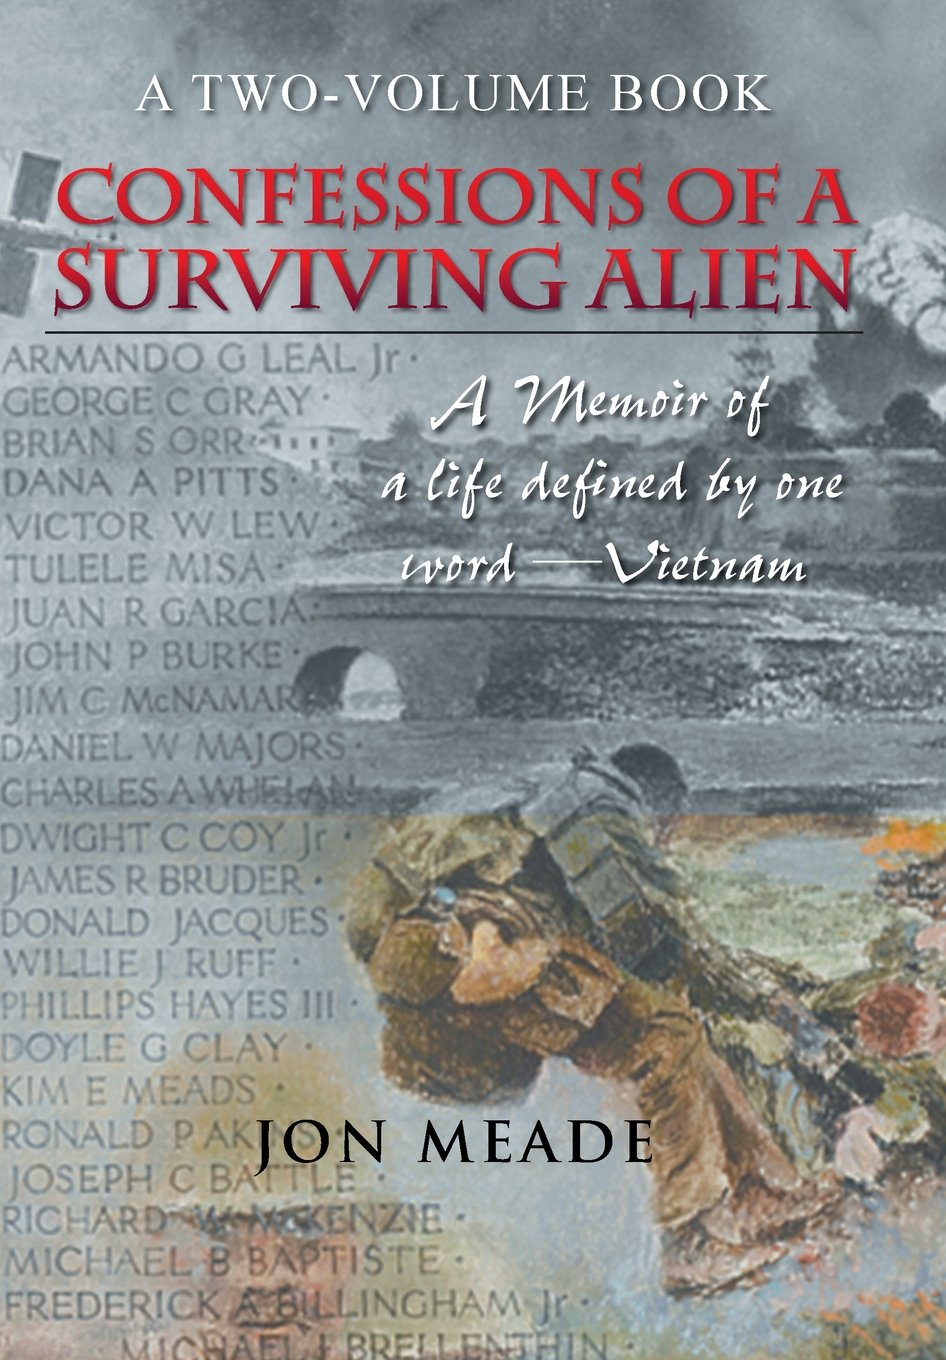 Read Online Confessions of a Surviving Alien: A Memoir of a Life Defined by One Word-Vietnam ePub fb2 ebook